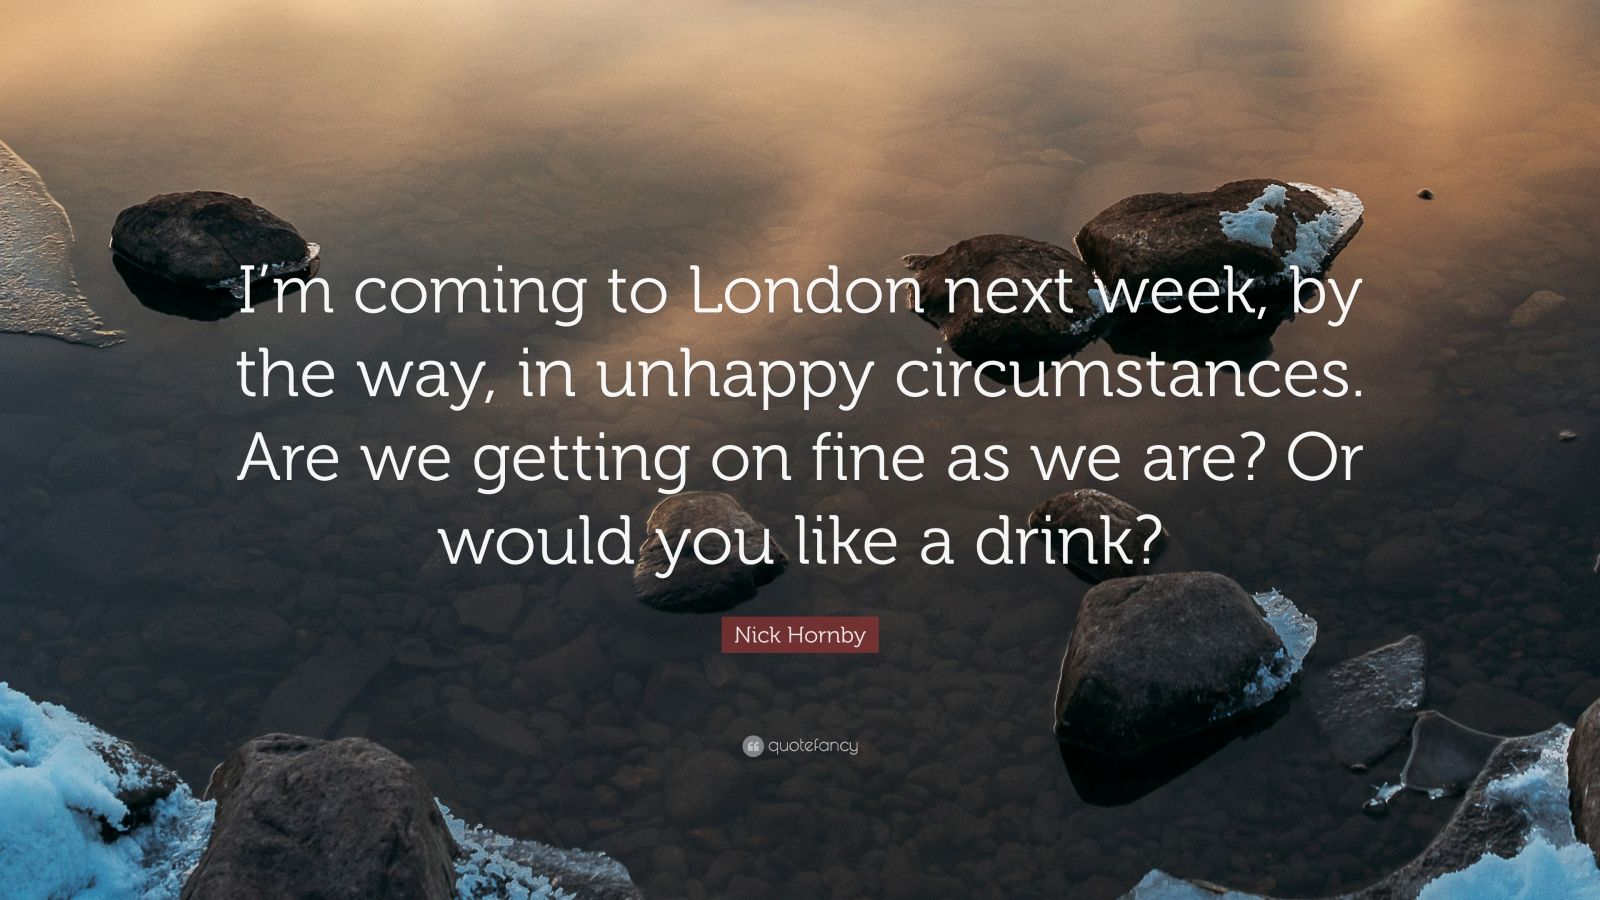 "Nick Hornby Quote: ""I'm coming to London next week, by the way, in unhappy circumstances. Are we getting on fine as we are? Or would you like a drink?"""